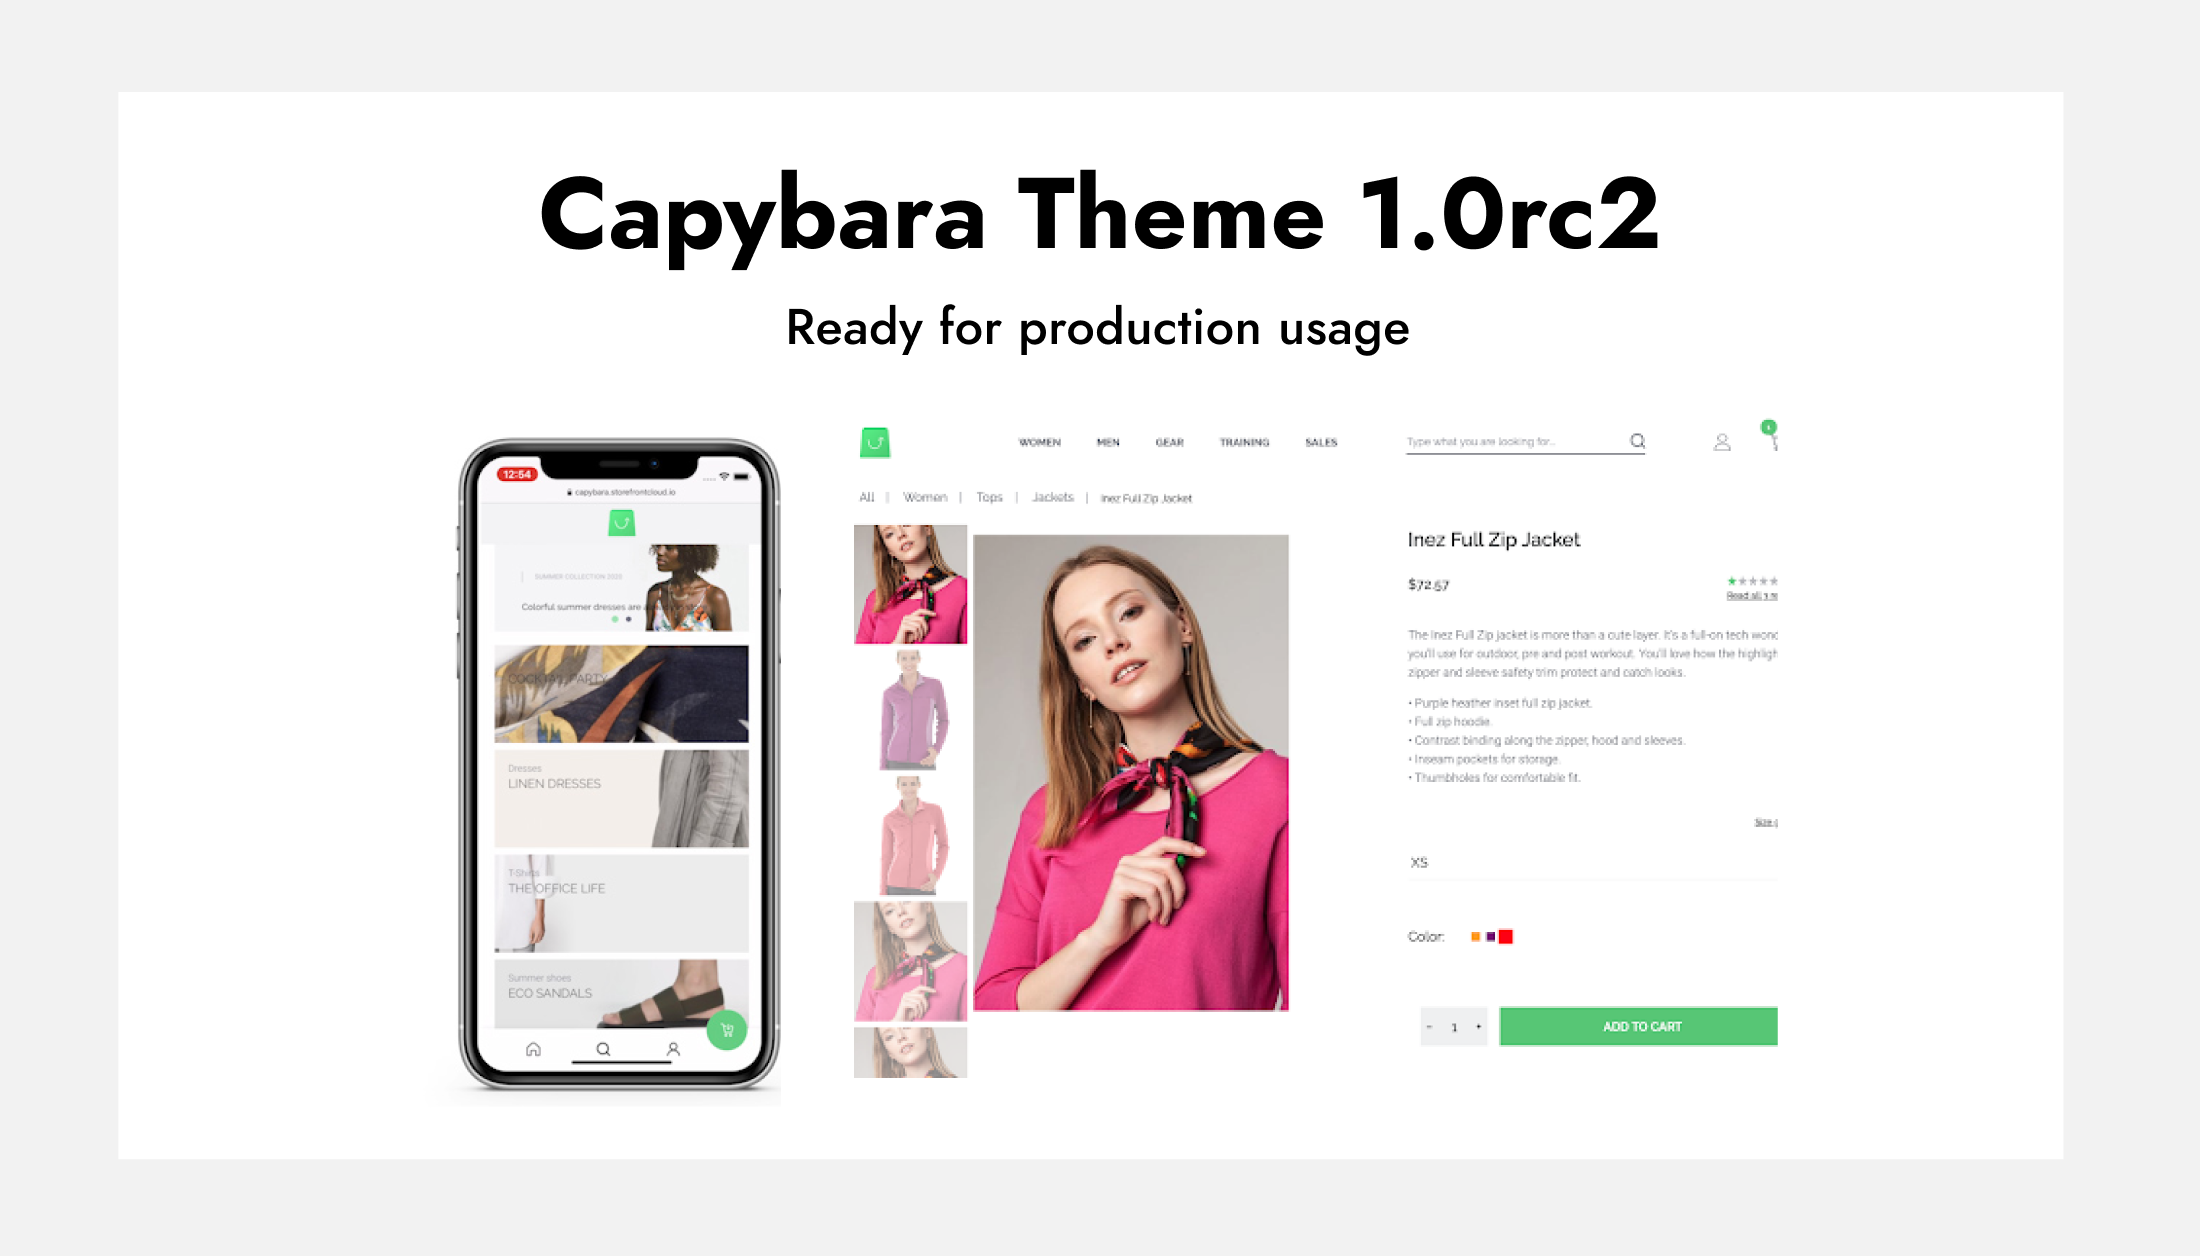 Capybara Theme1.0rc2